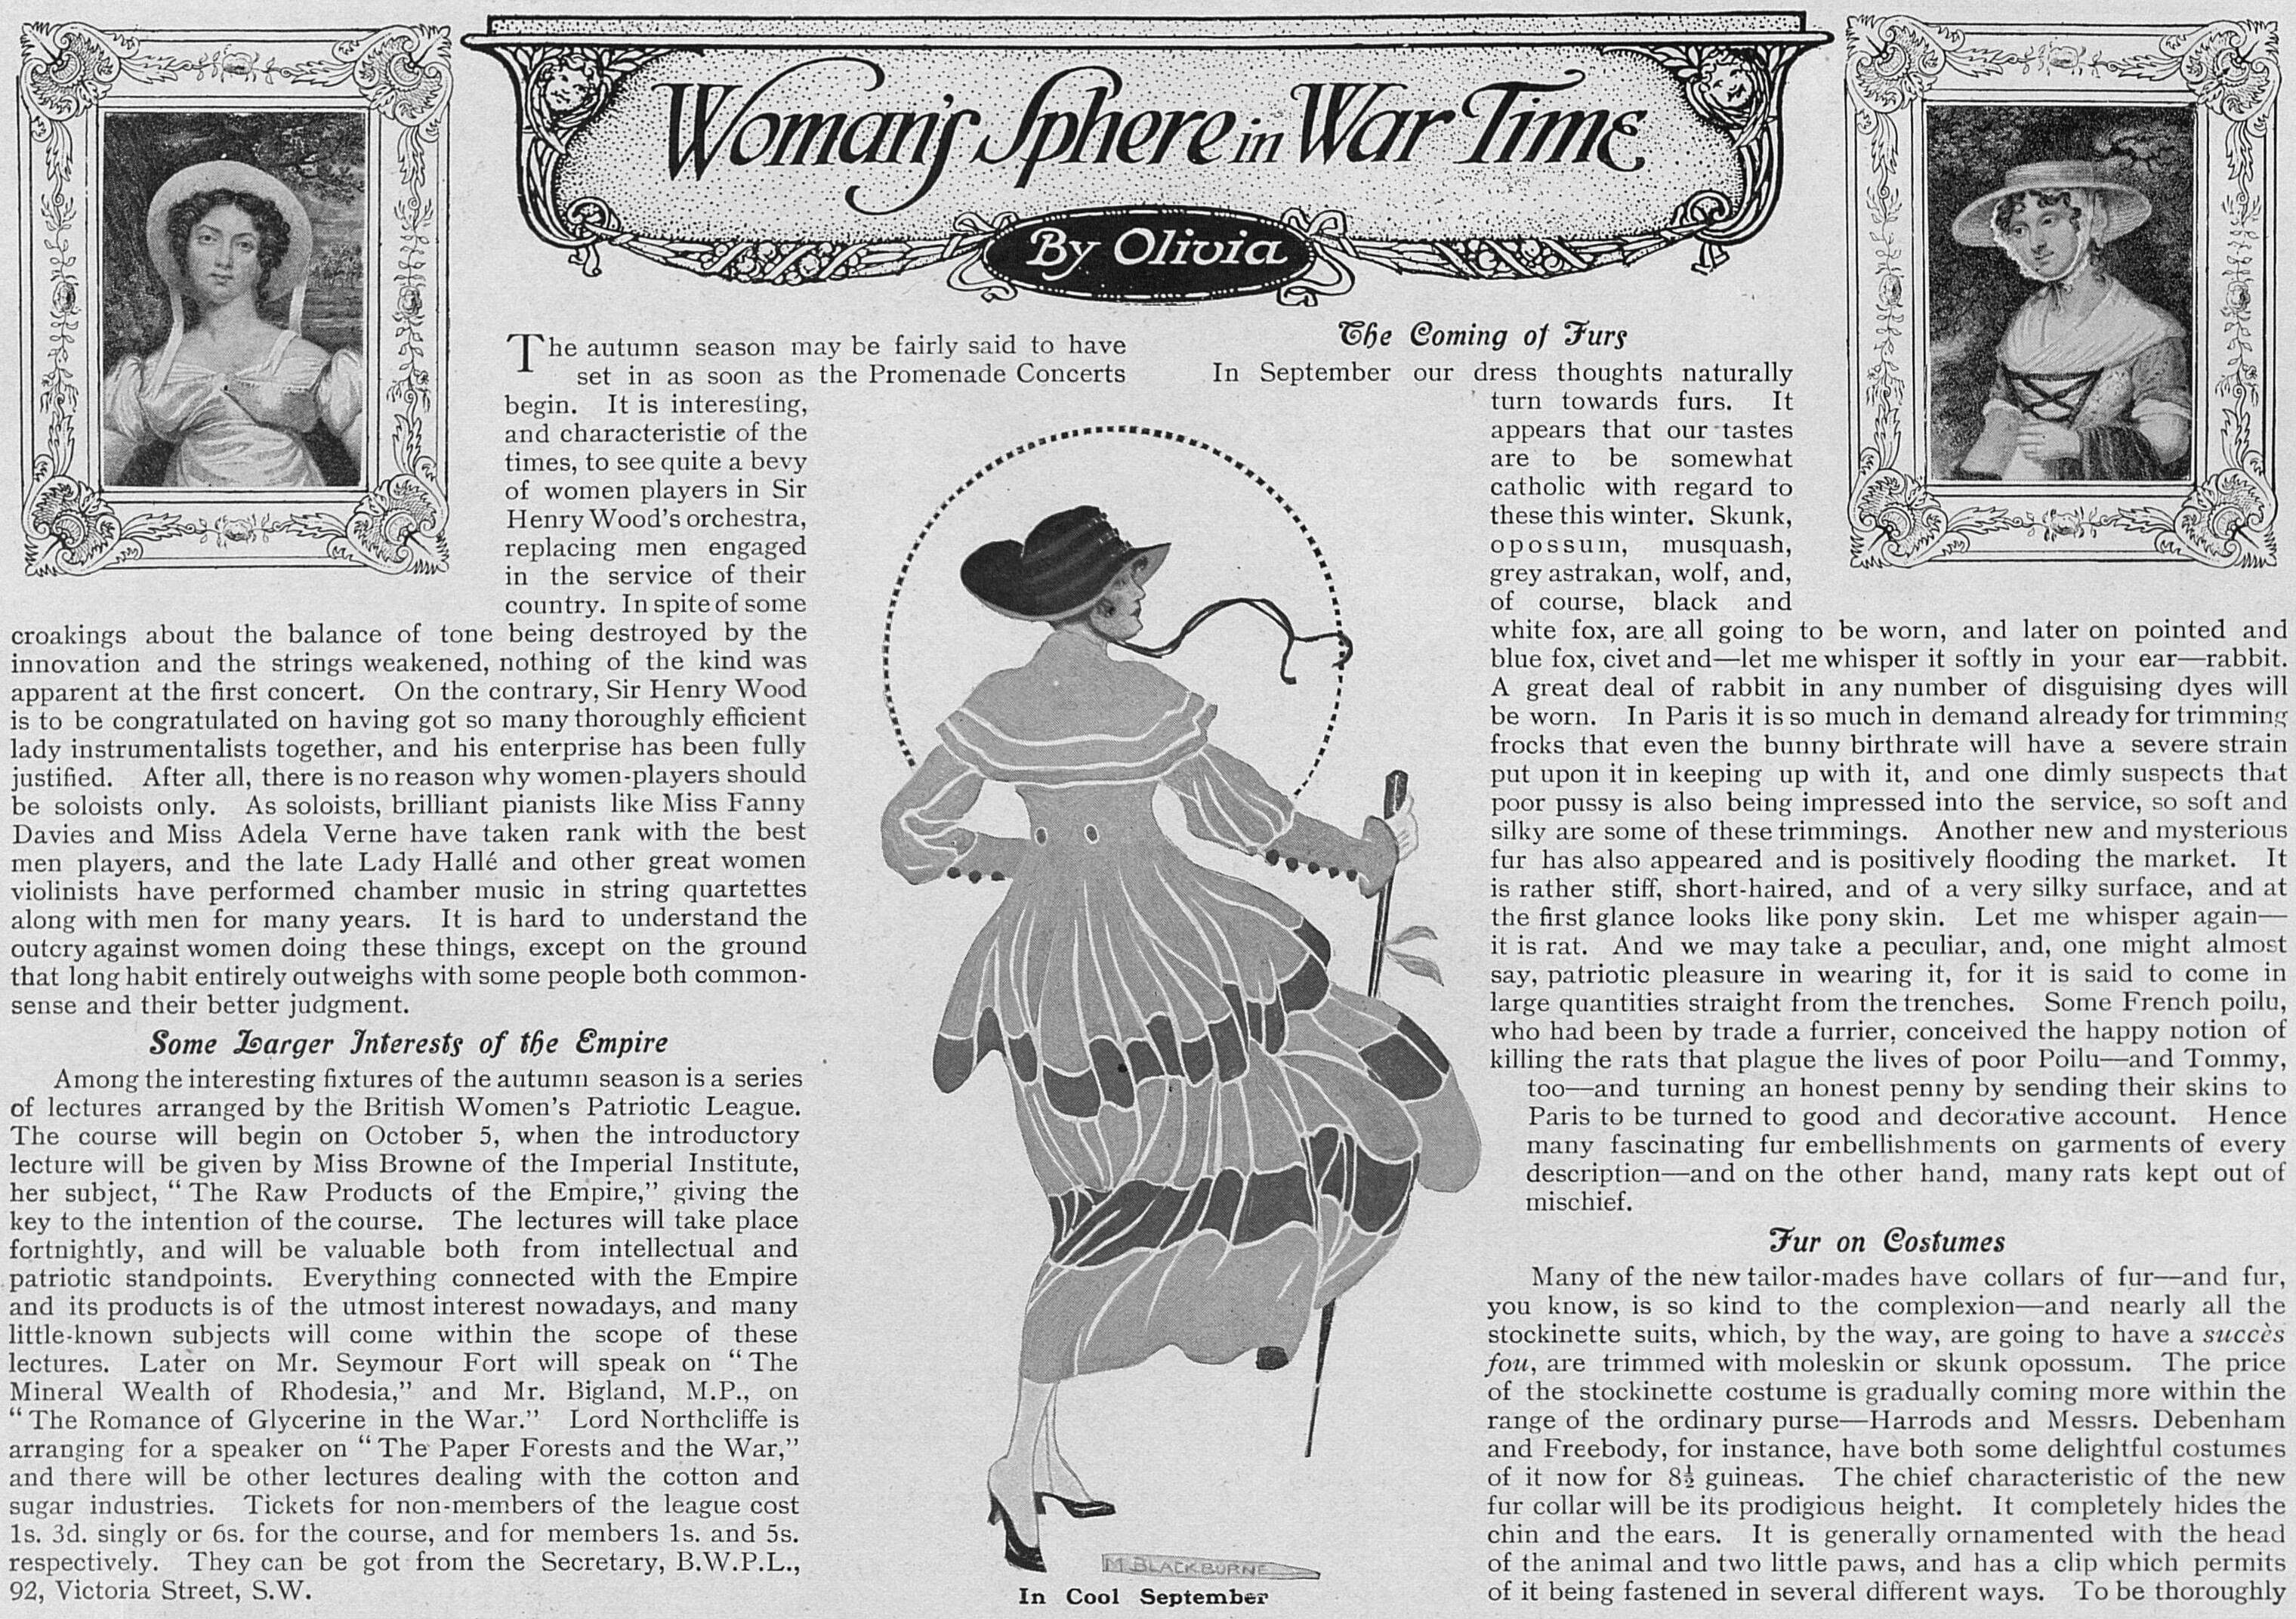 WomansSphereInWarTime_9Sep1916